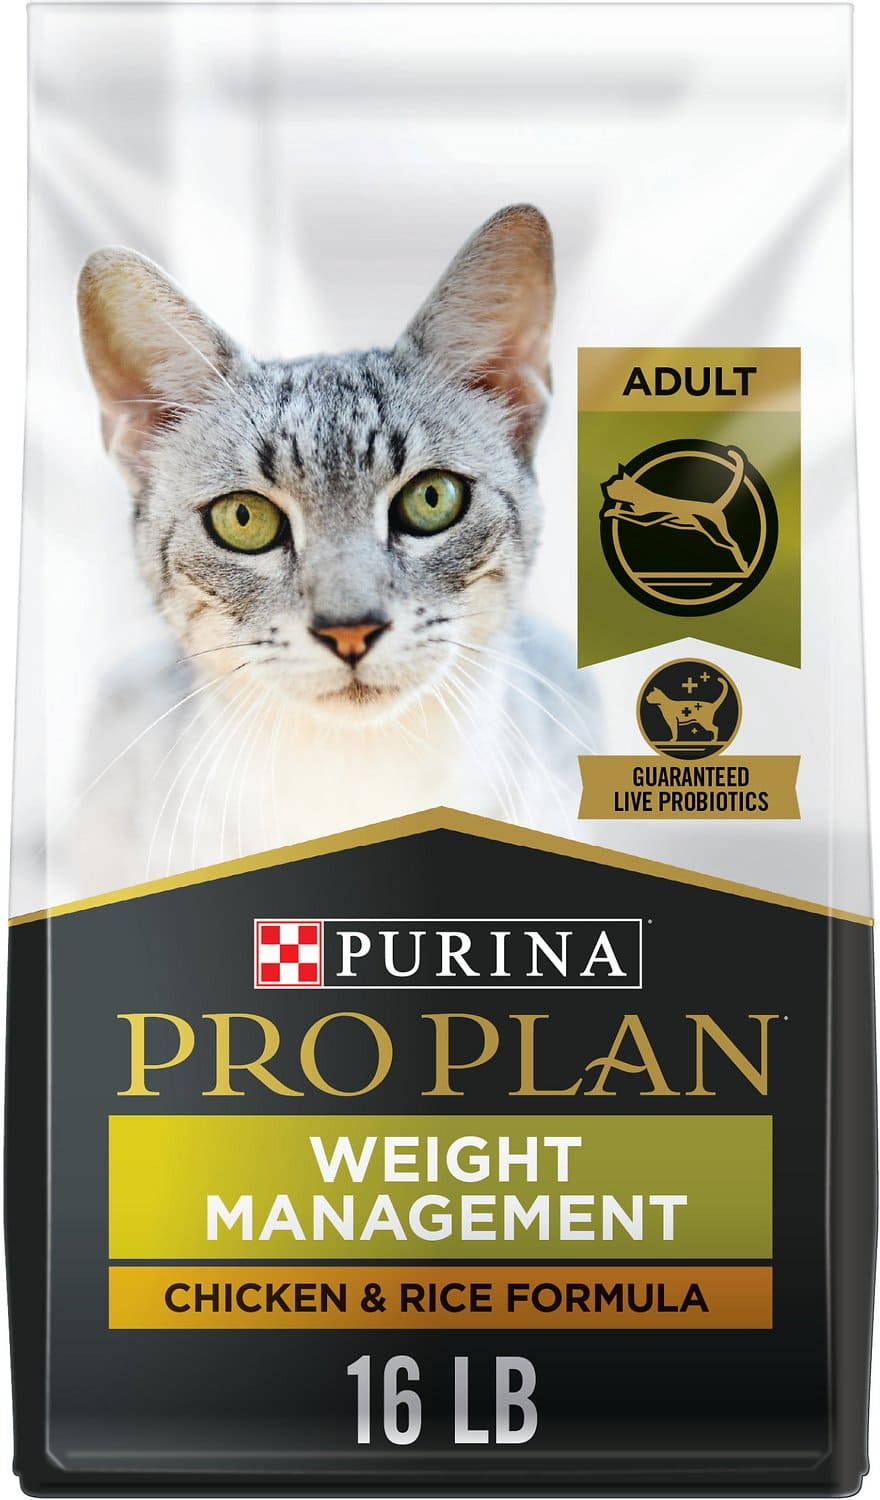 Purina Pro Plan Adult Weight Management Formula for Cats 16 lbs Chicken & Rice  1